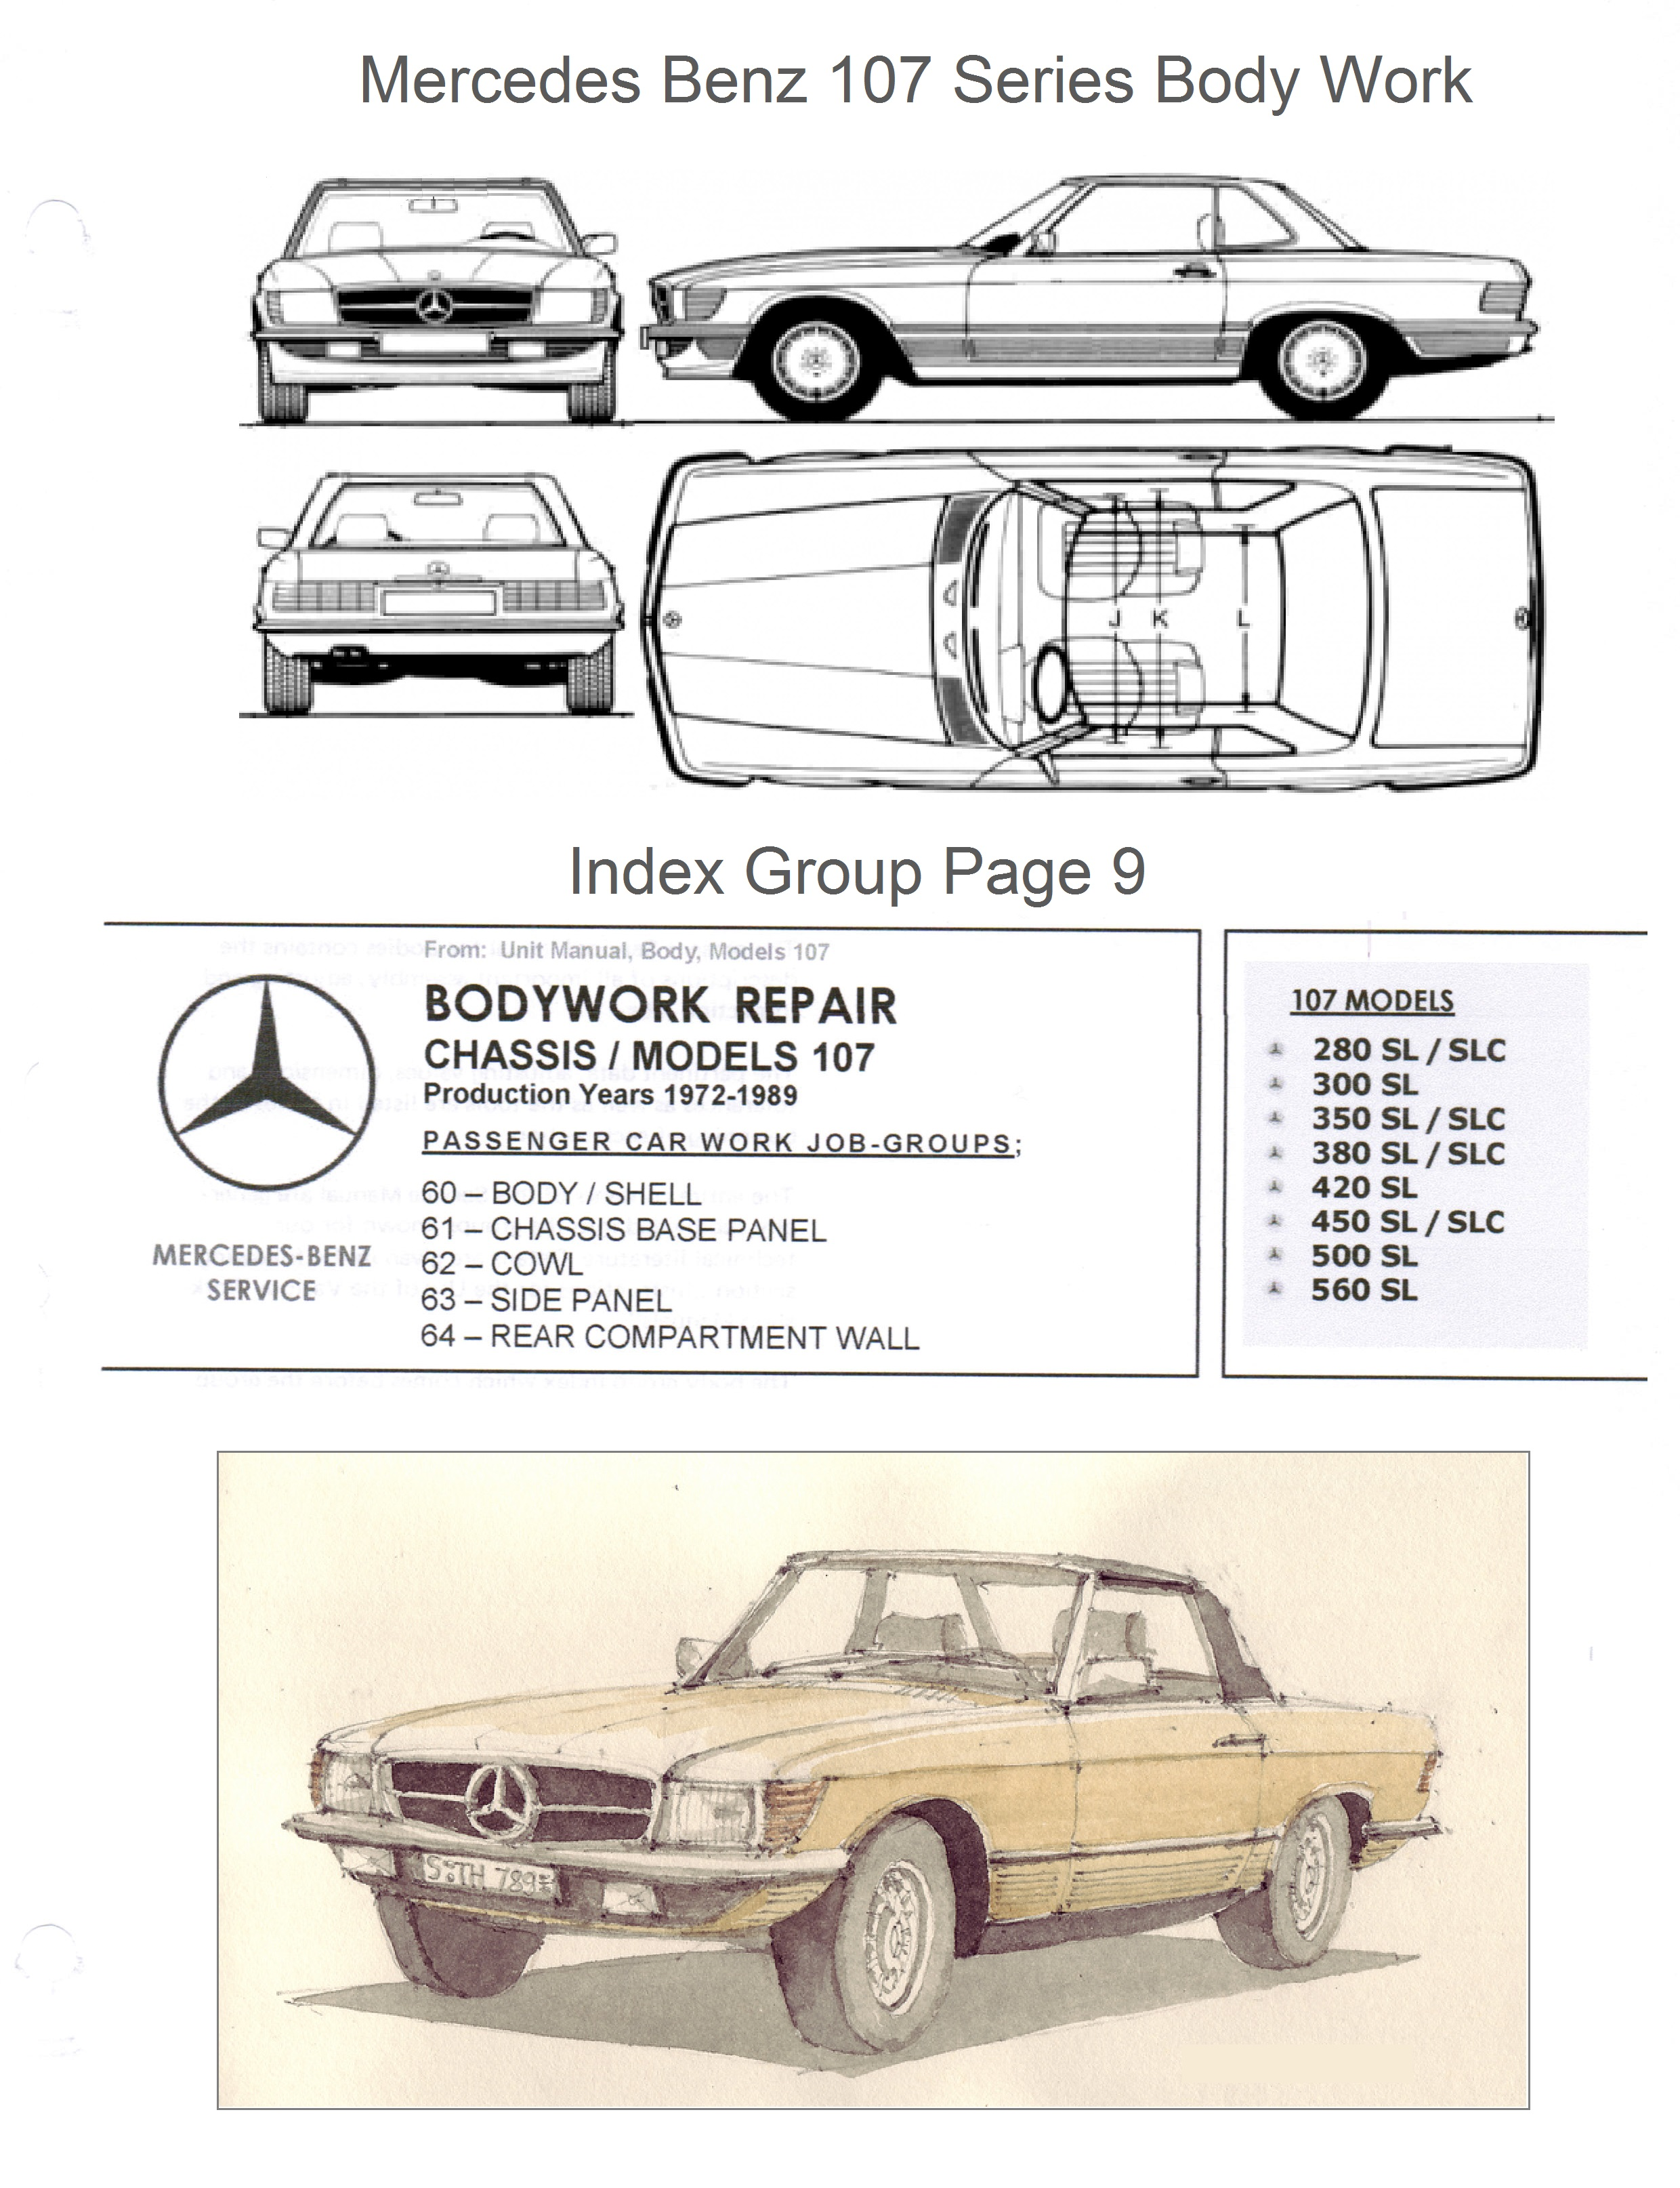 Mercedes R107 Repair Manual 1987 300d Alternator Wiring Diagram Benz 107 Bodywork And Frame On Cd 380 380sl 450 Rh Mb107 Com Download Owners Pdf